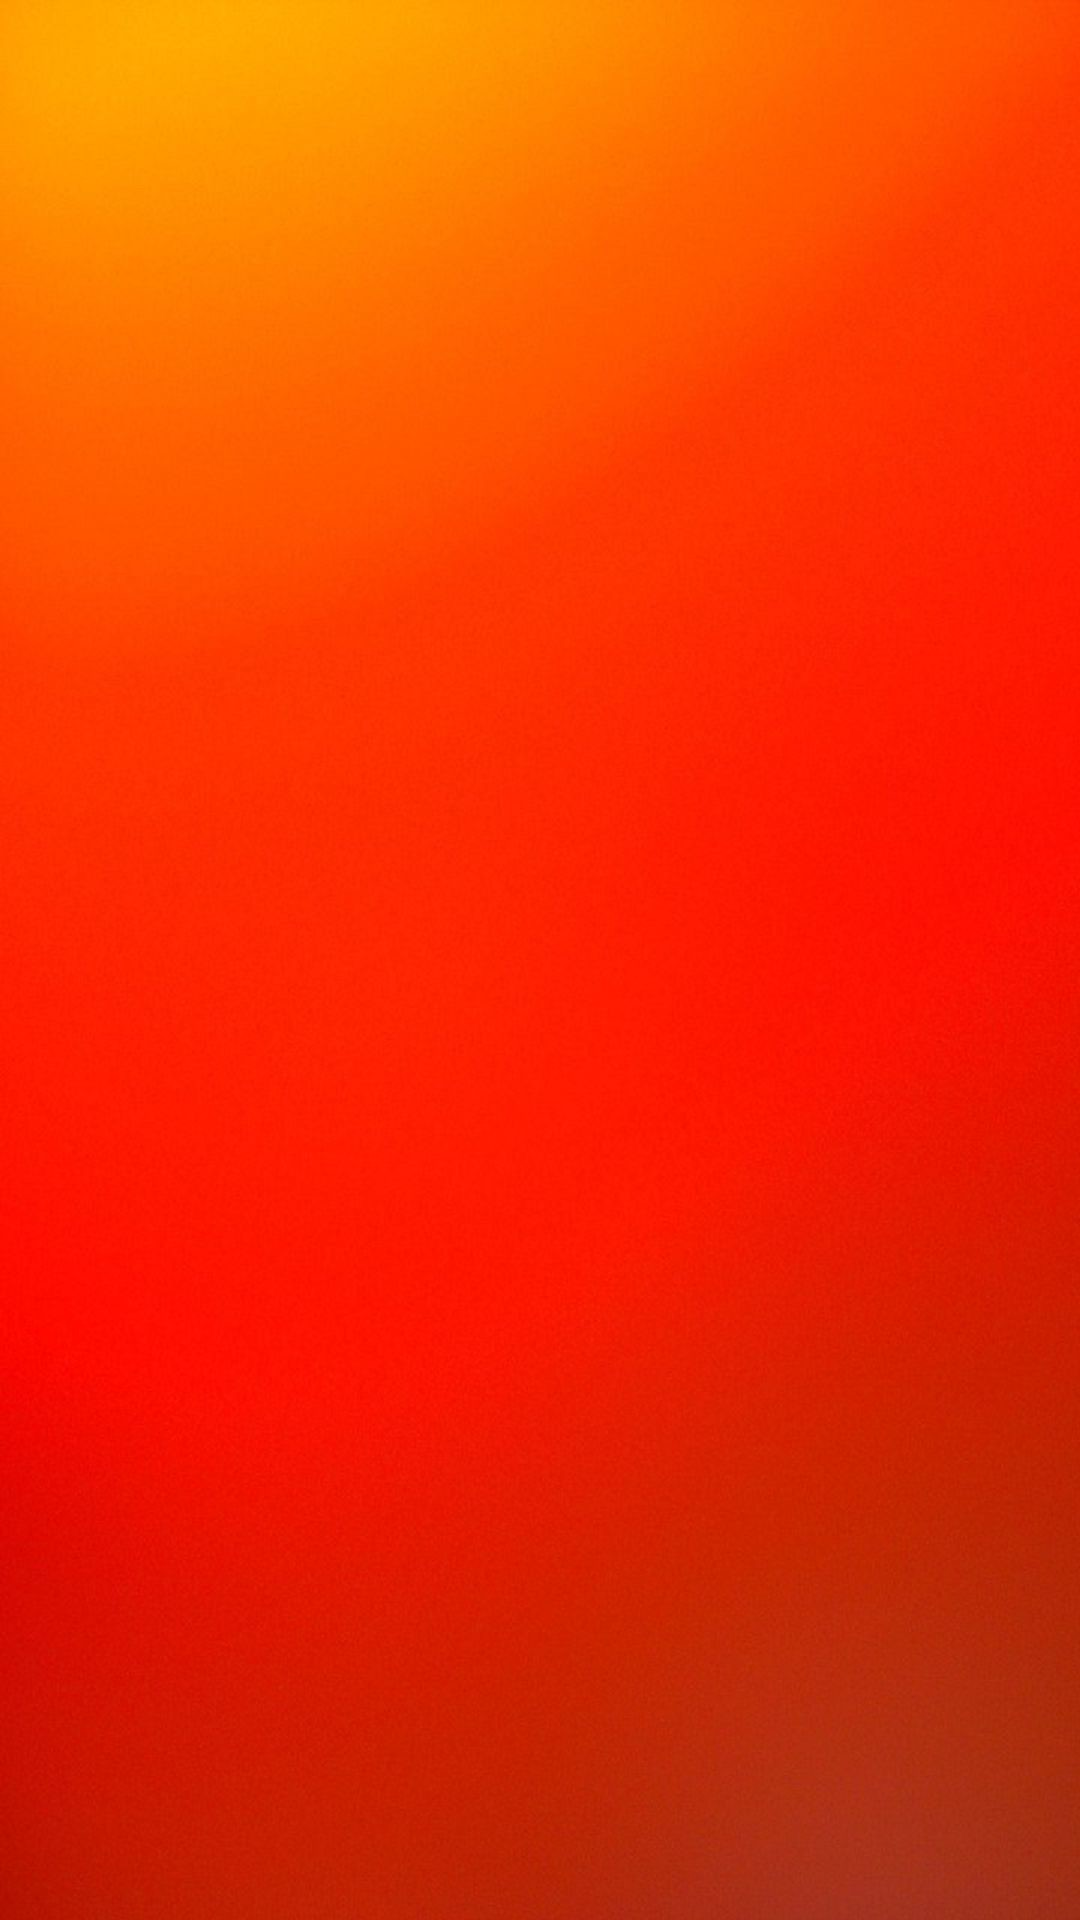 1080x1920 iOS 7 Official Bright Orange Android Wallpaper ...